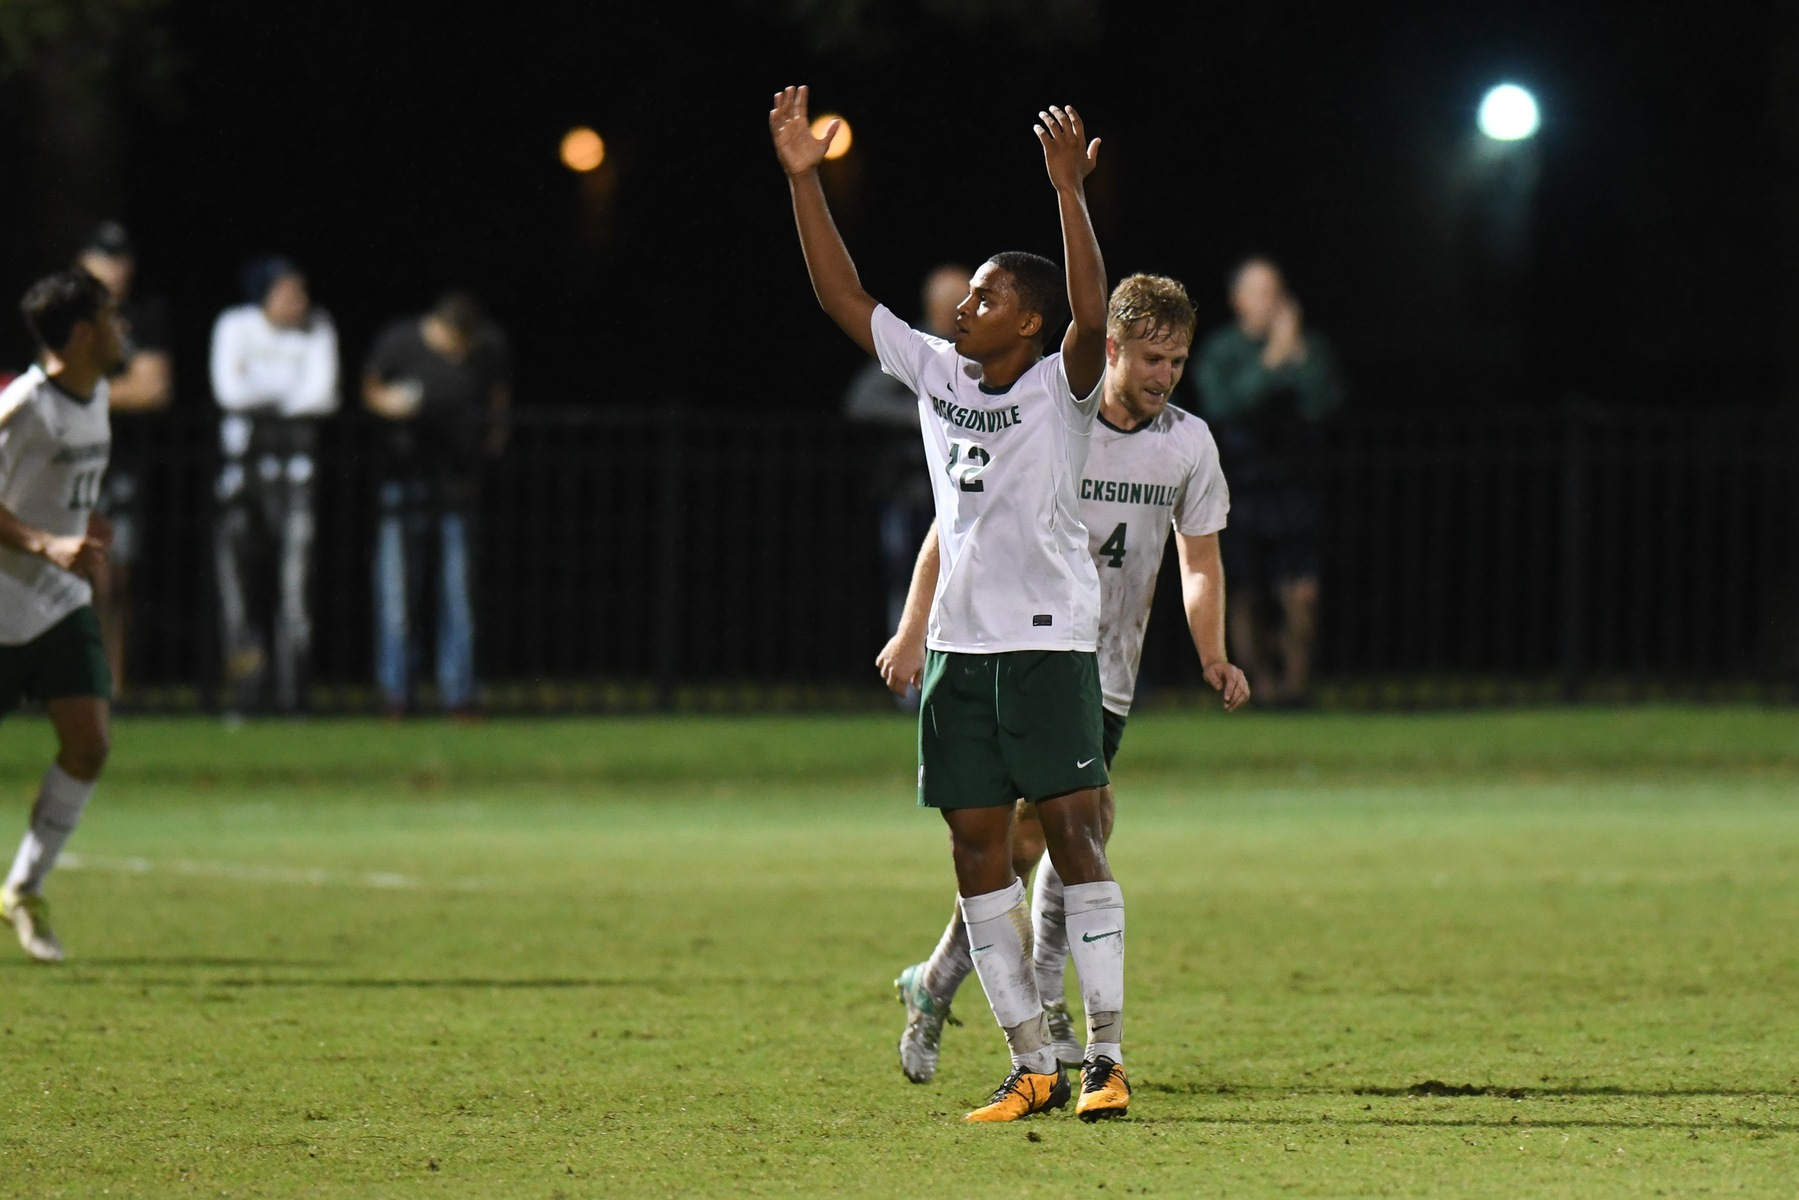 Jacksonville Clinches a Spot in #ASUNMSOC Championship with 3-1 Victory